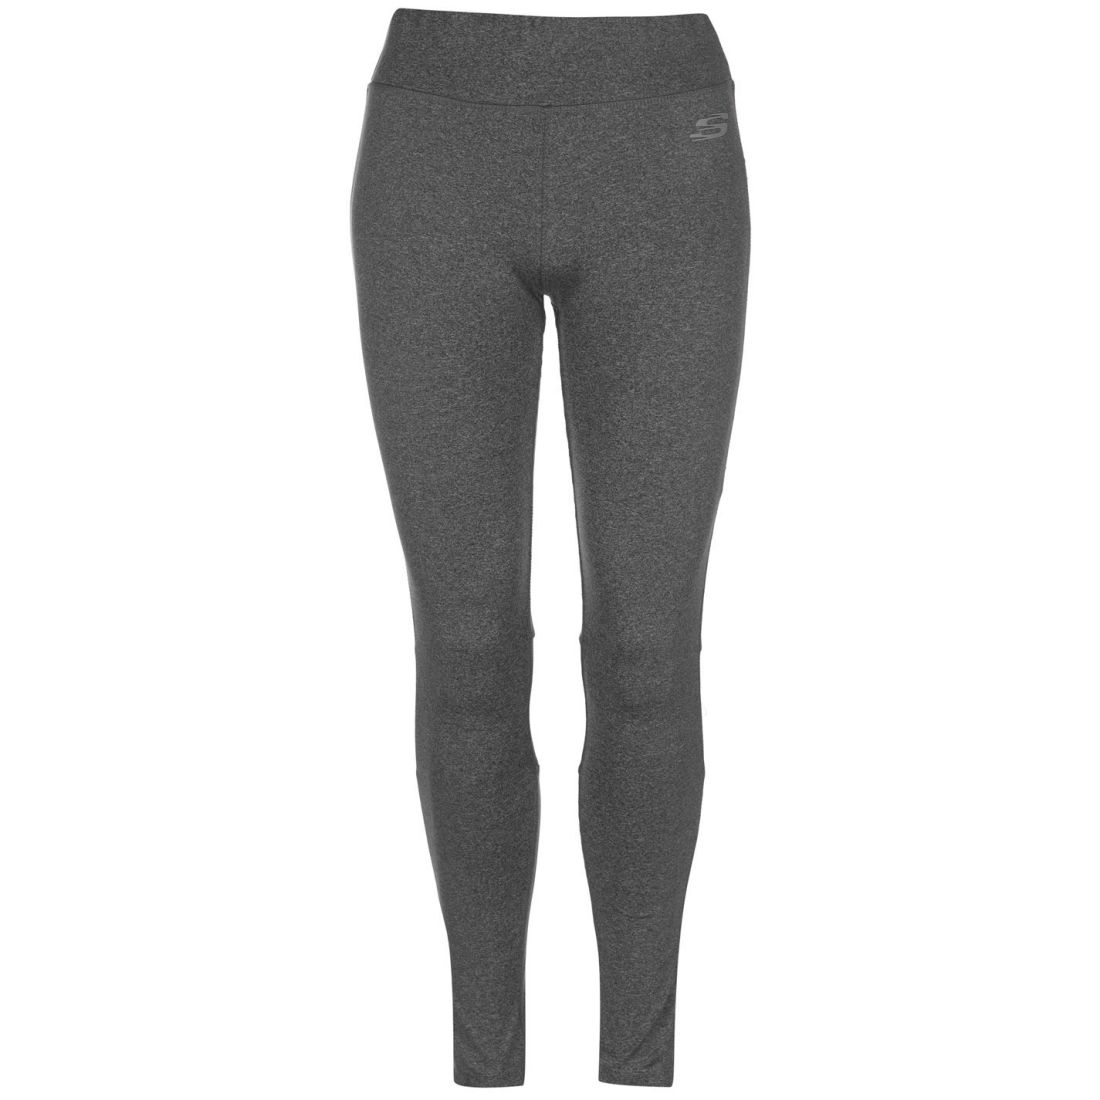 3b9777430f1e7 Skechers Womens Core Tight Performance Tights Pants Trousers Bottoms ...